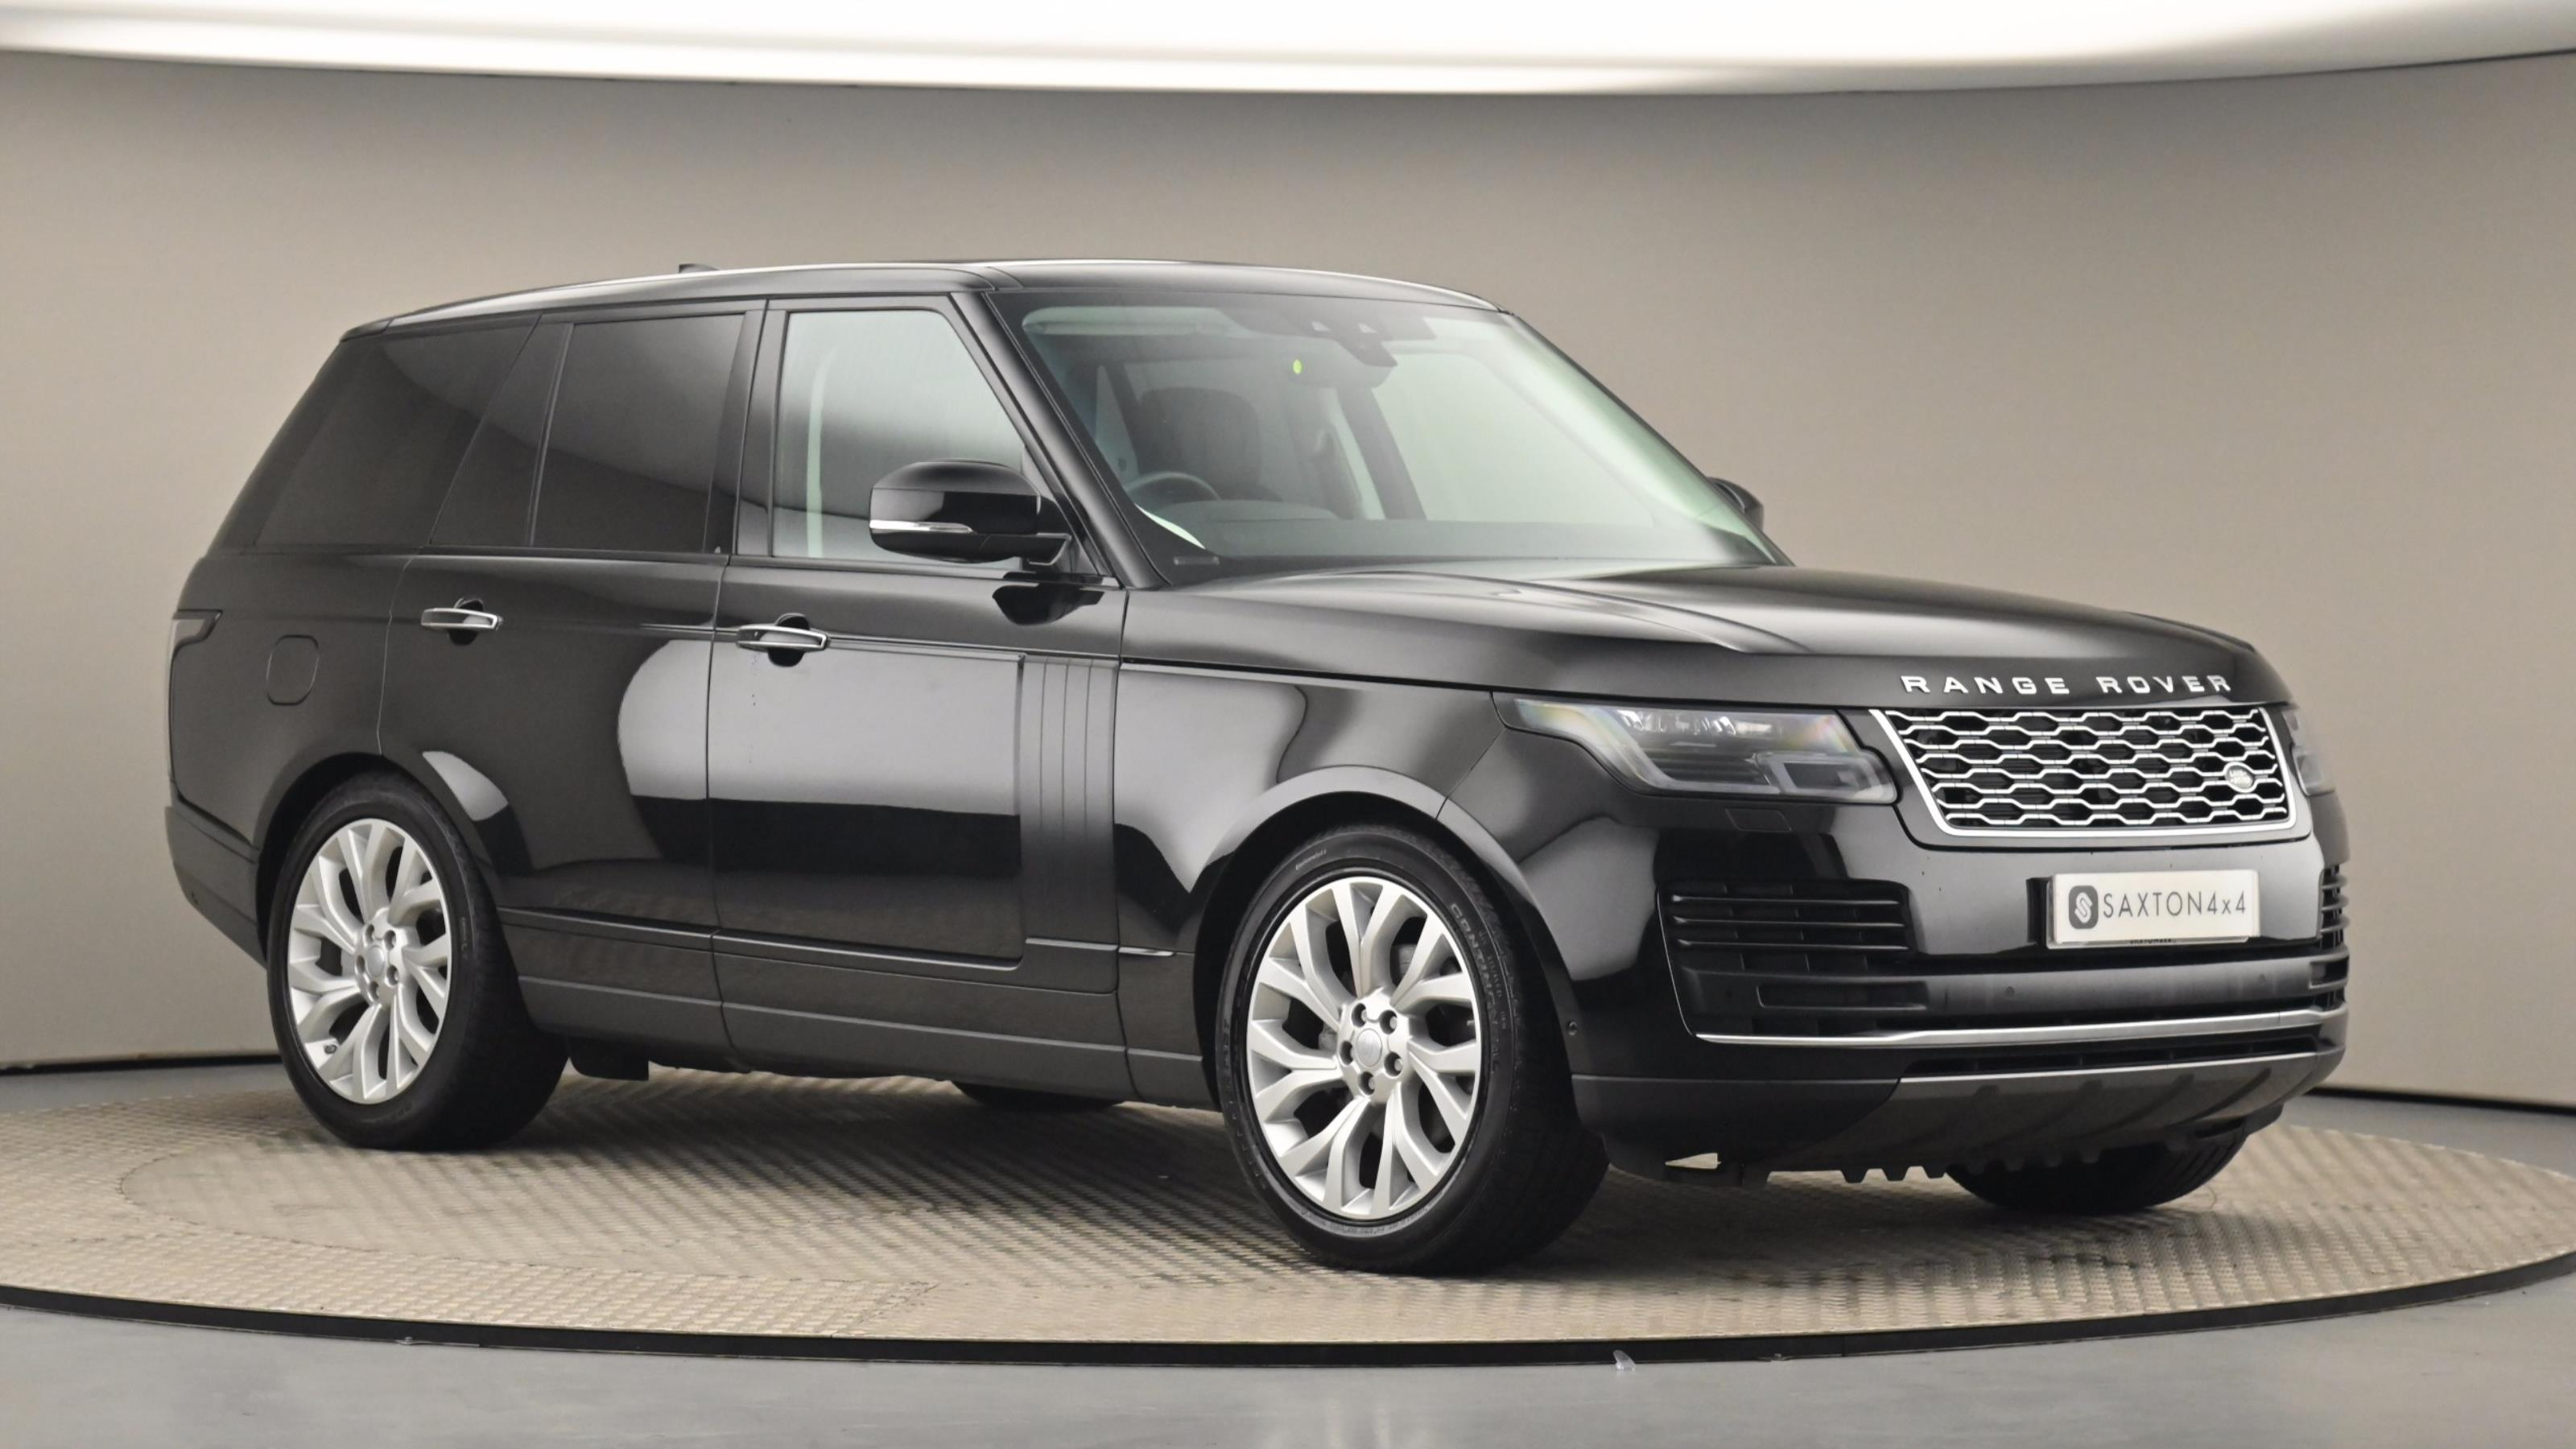 Used 2018 Land Rover RANGE ROVER 3.0 SDV6 Vogue SE 4dr Auto BLACK at Saxton4x4